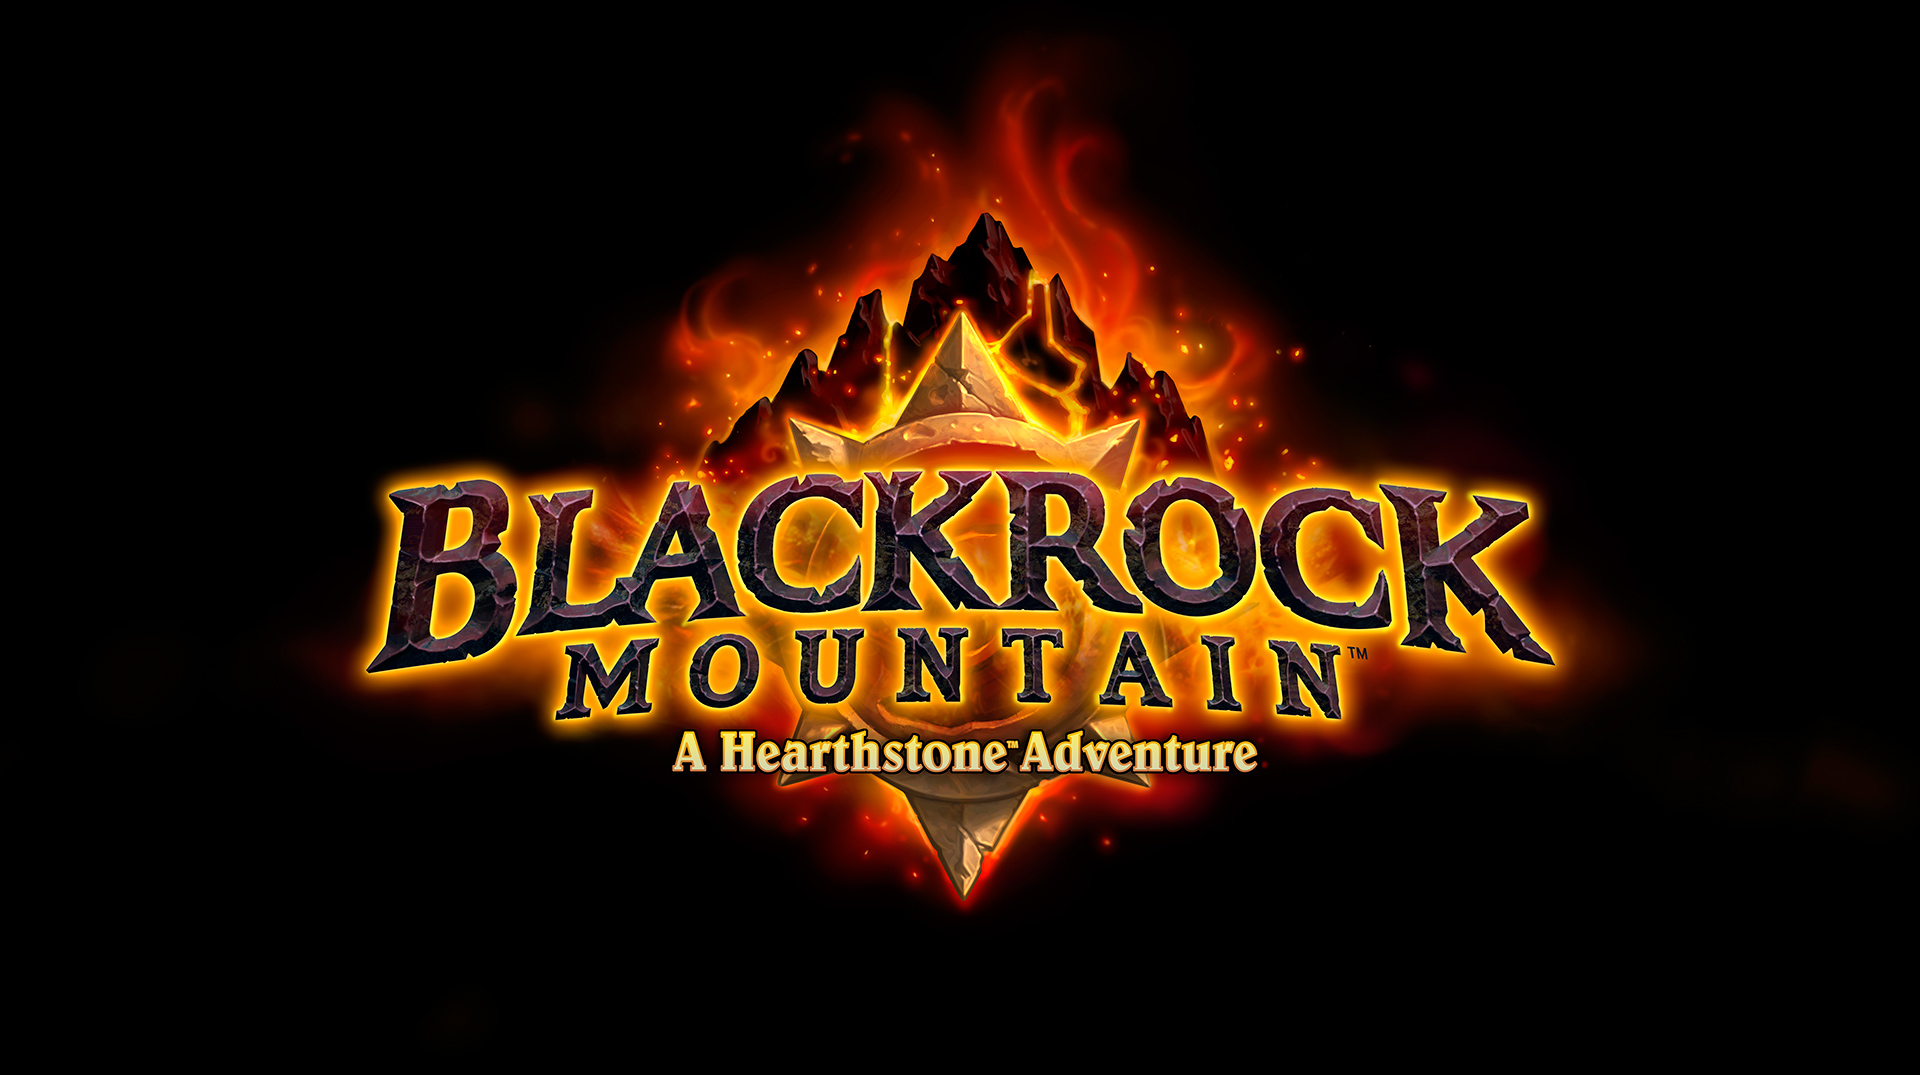 Diablo Hd Wallpaper Blackrock Mountain A Hearthstone Adventure Wallpapers